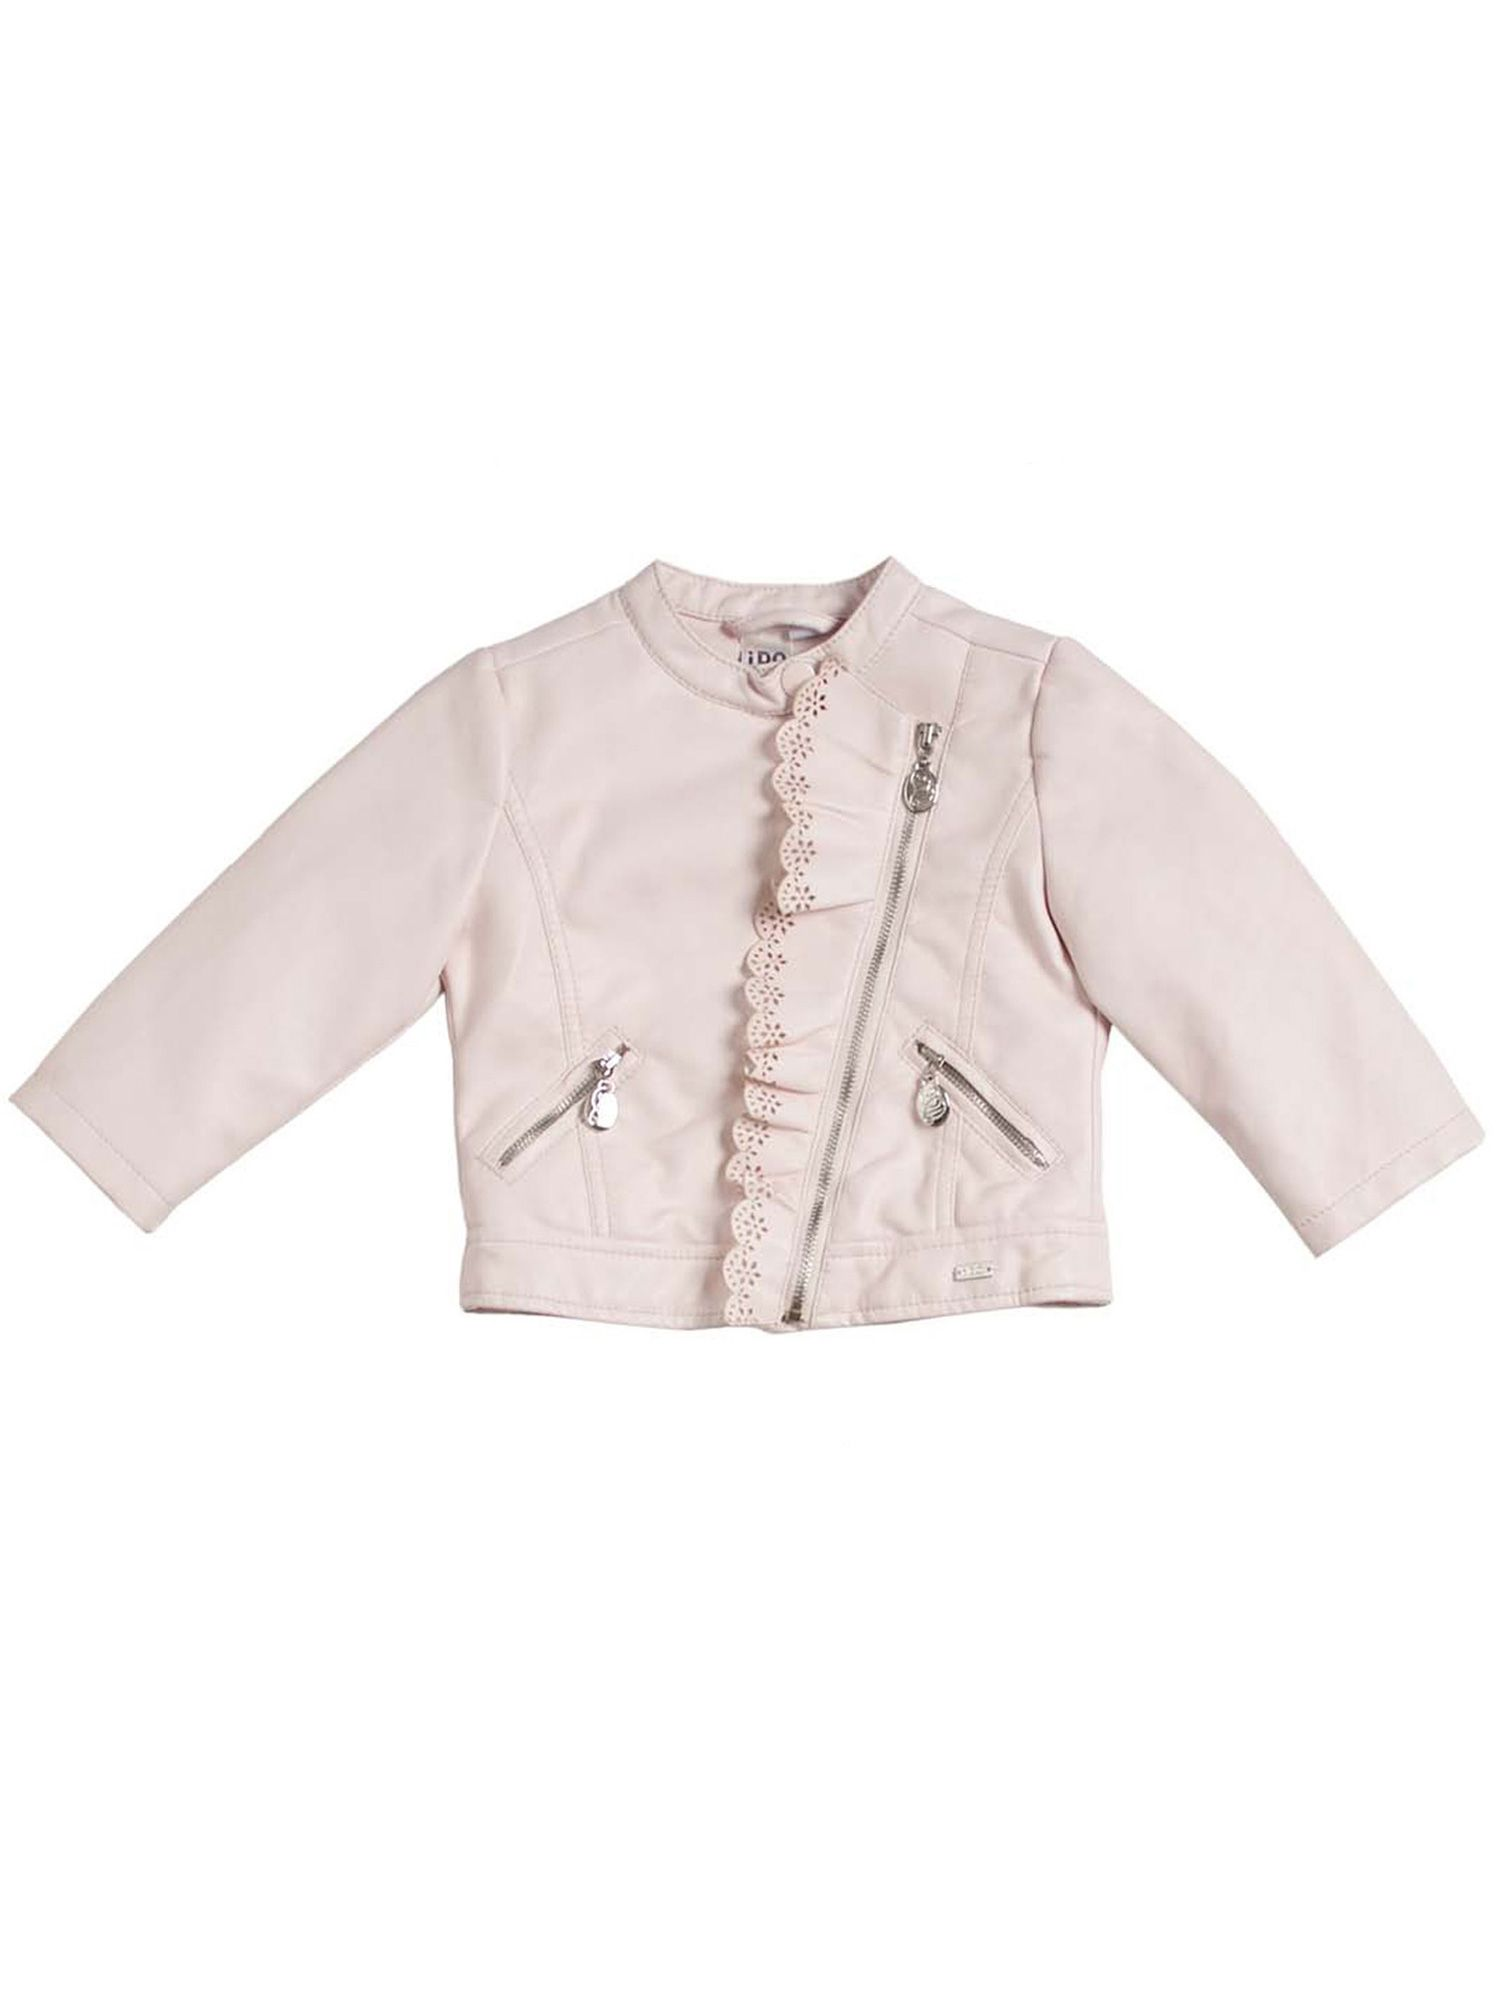 Girls pale pink faux leather jacket